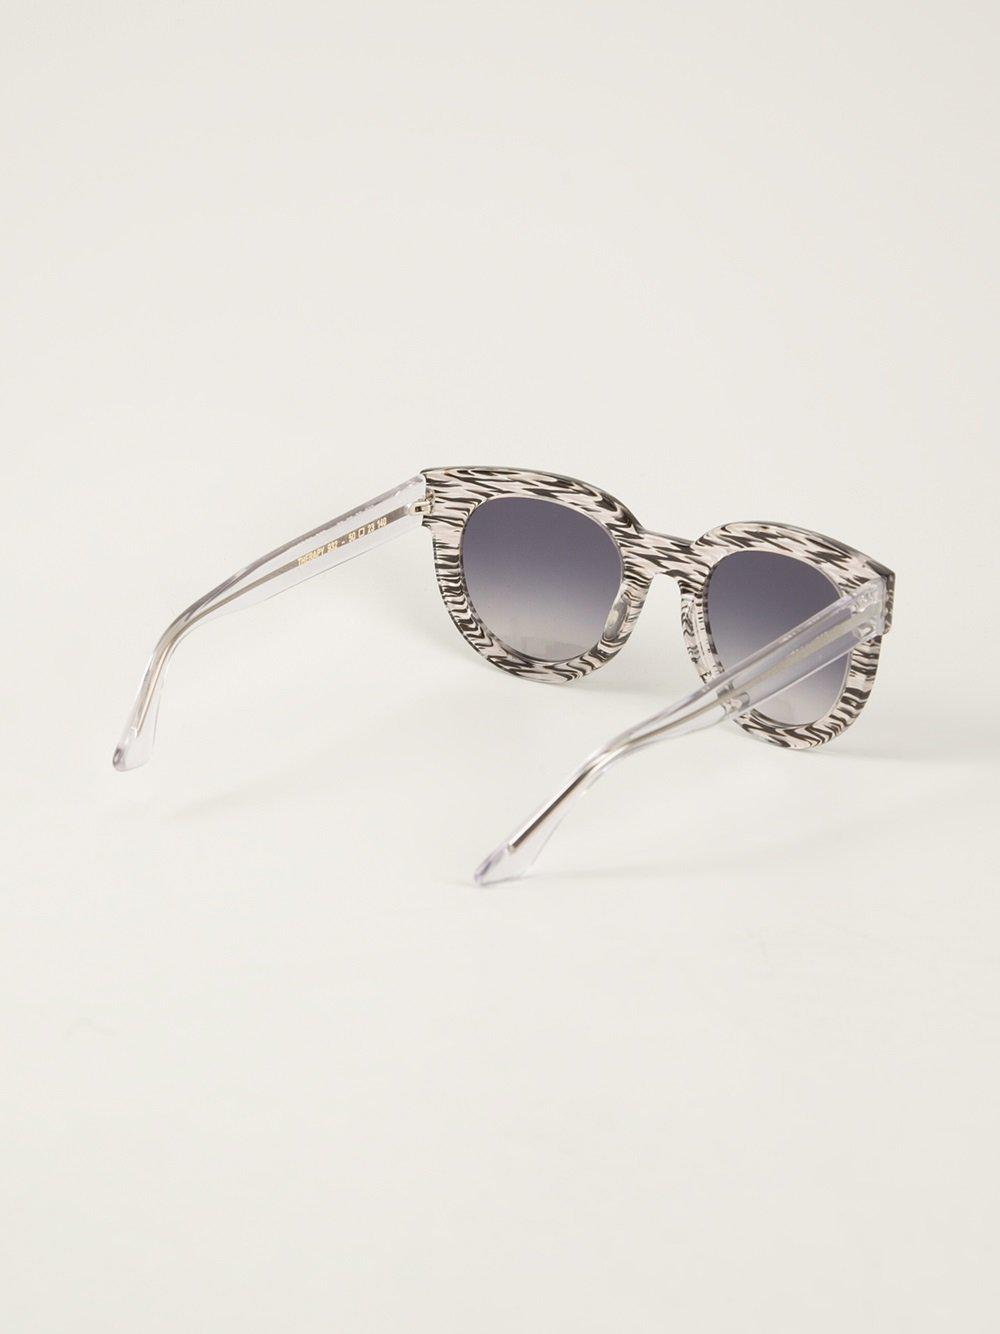 72c4294a35 Thierry Lasry Thick Rimmed Sunglasses in Black - Lyst